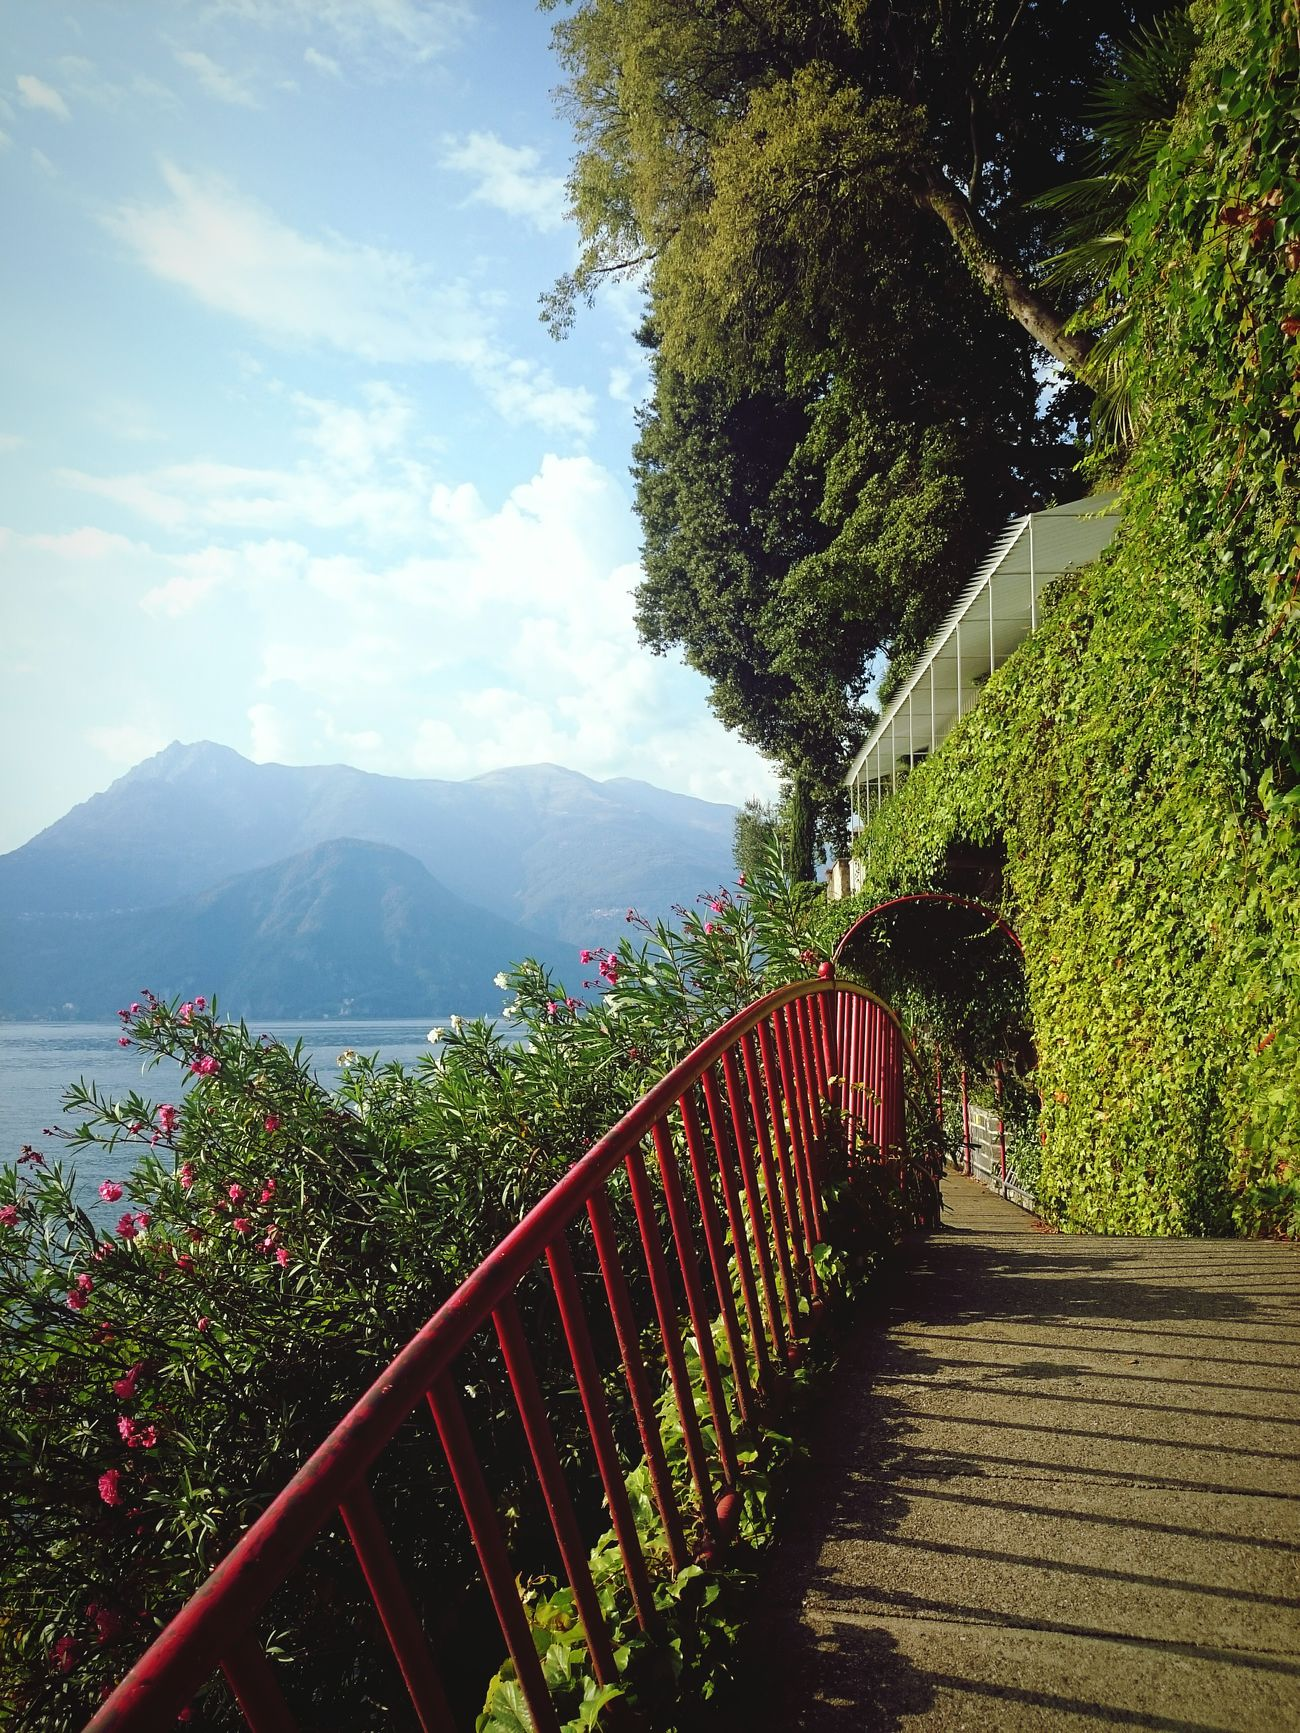 Lakecomo Italy🇮🇹 Summer ☀ Nature Eyeemphotography Walking Around Taking Pictures Sightseeing Enjoying Life Relaxing